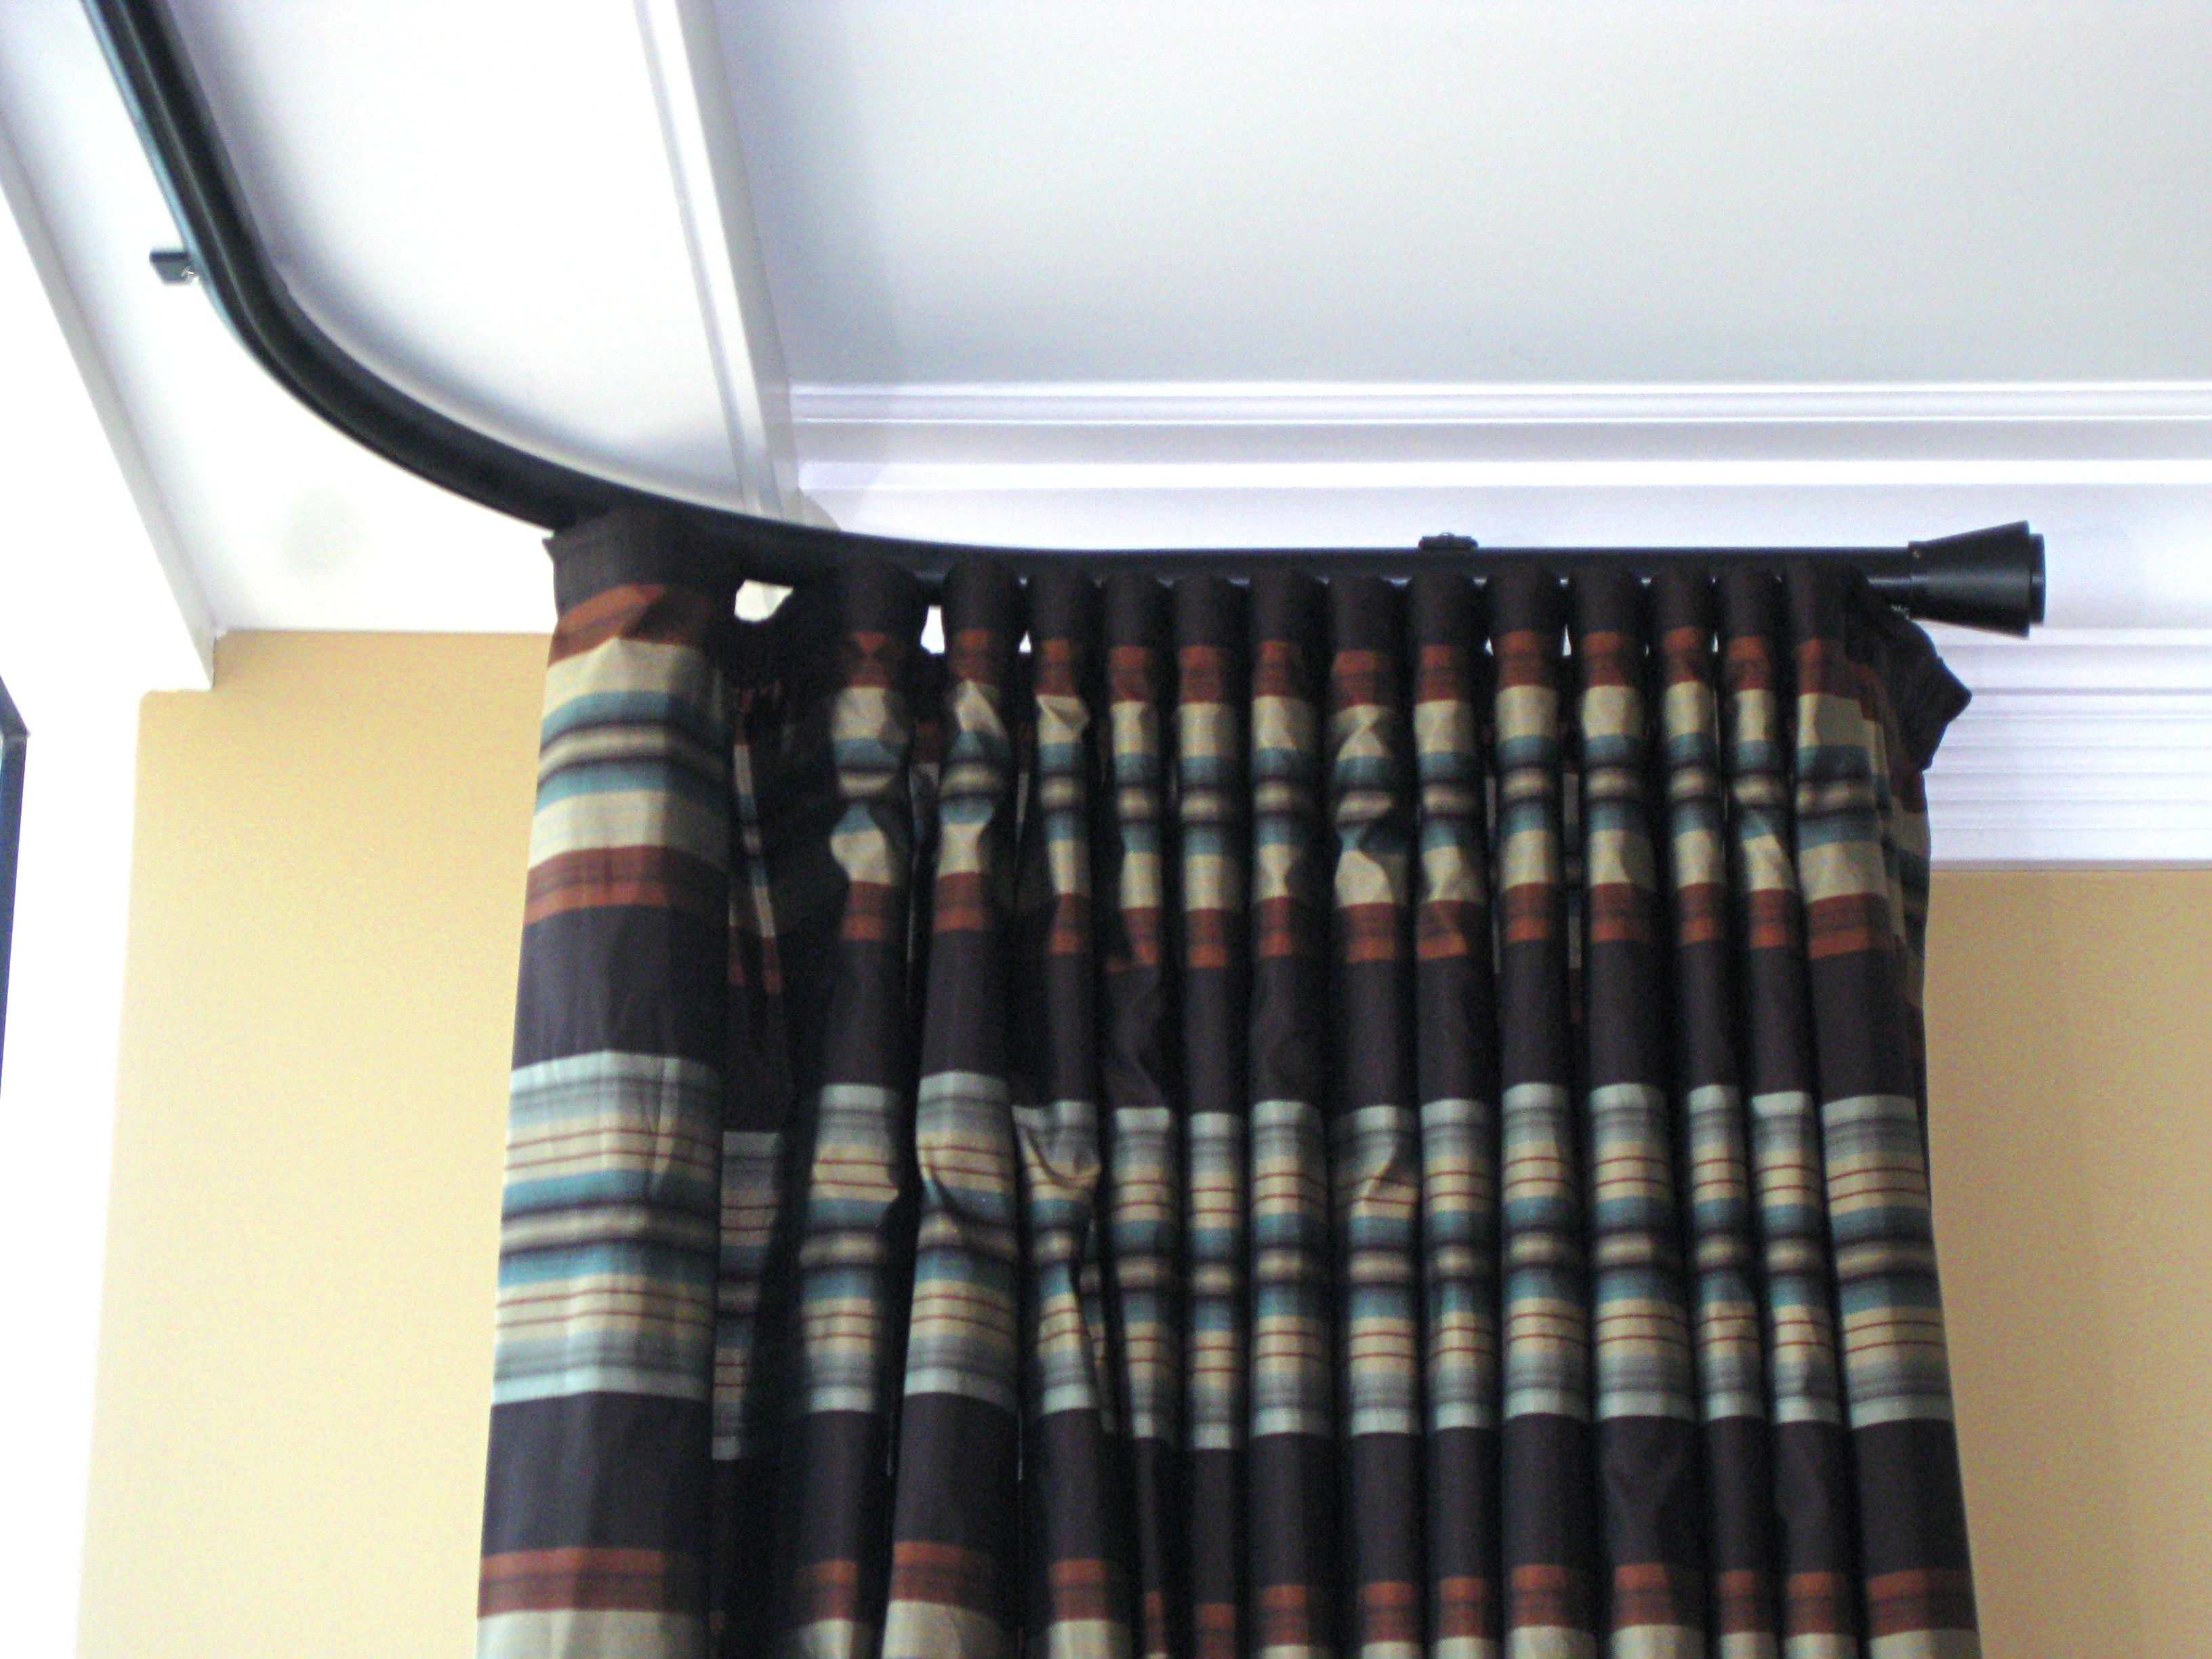 Curved Windows Bent 30mm Channel Rod With Mars Finial Ceiling